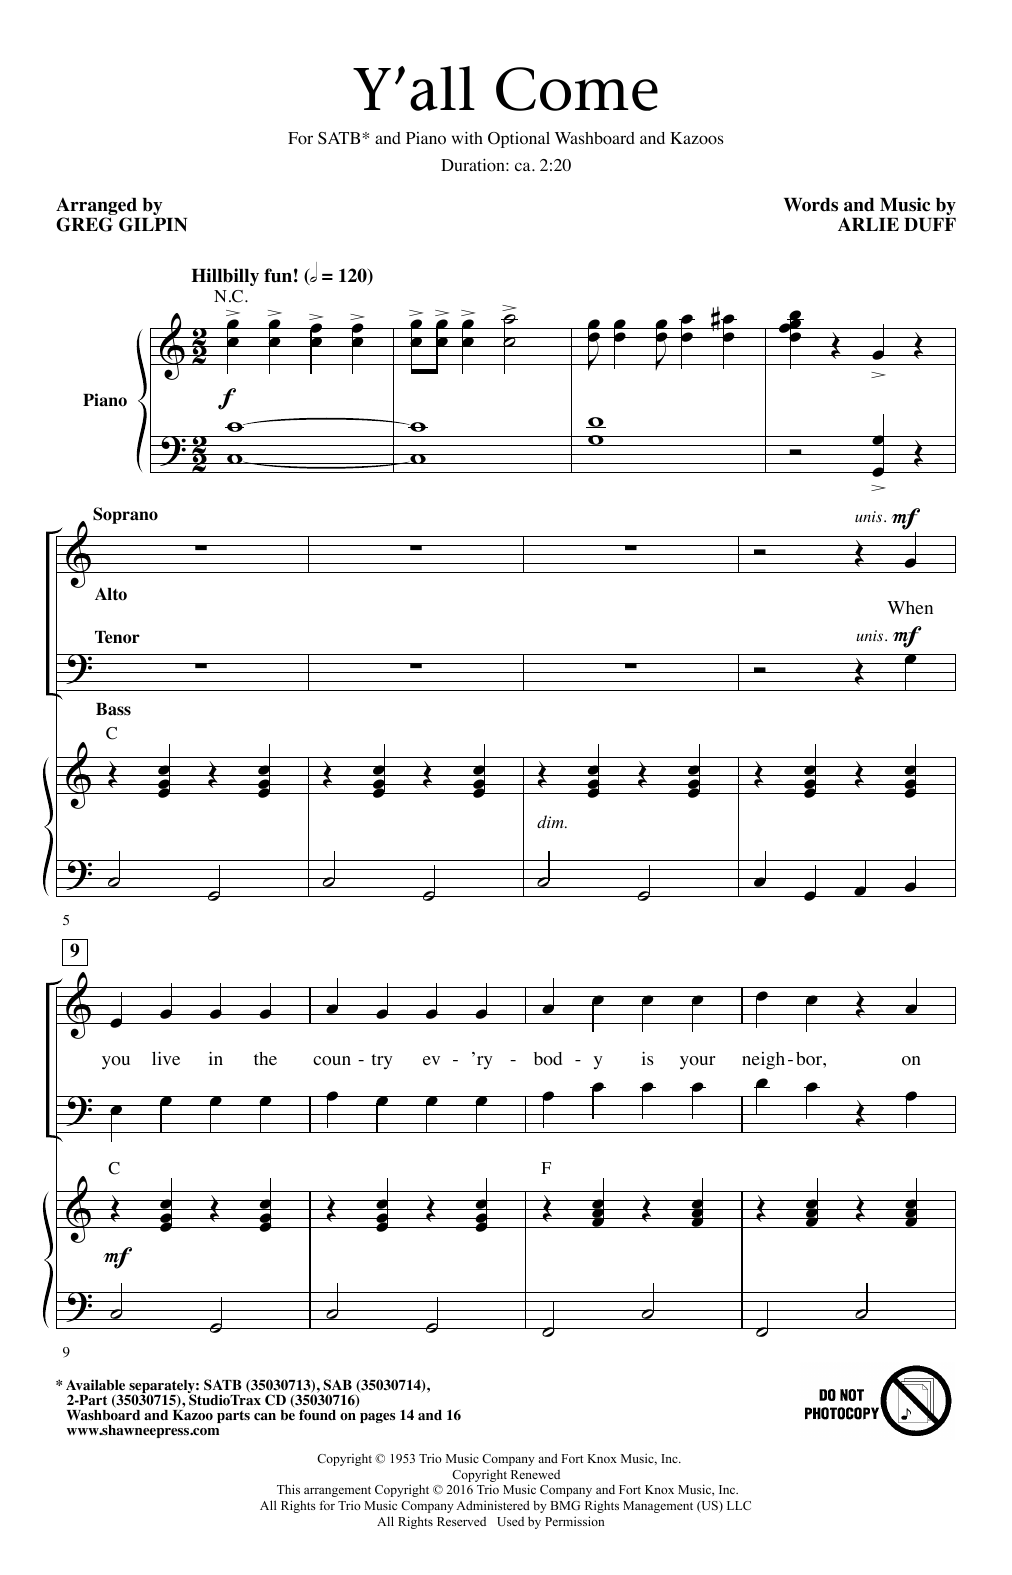 Partition chorale Y'All Come de Arlie Duff - SATB